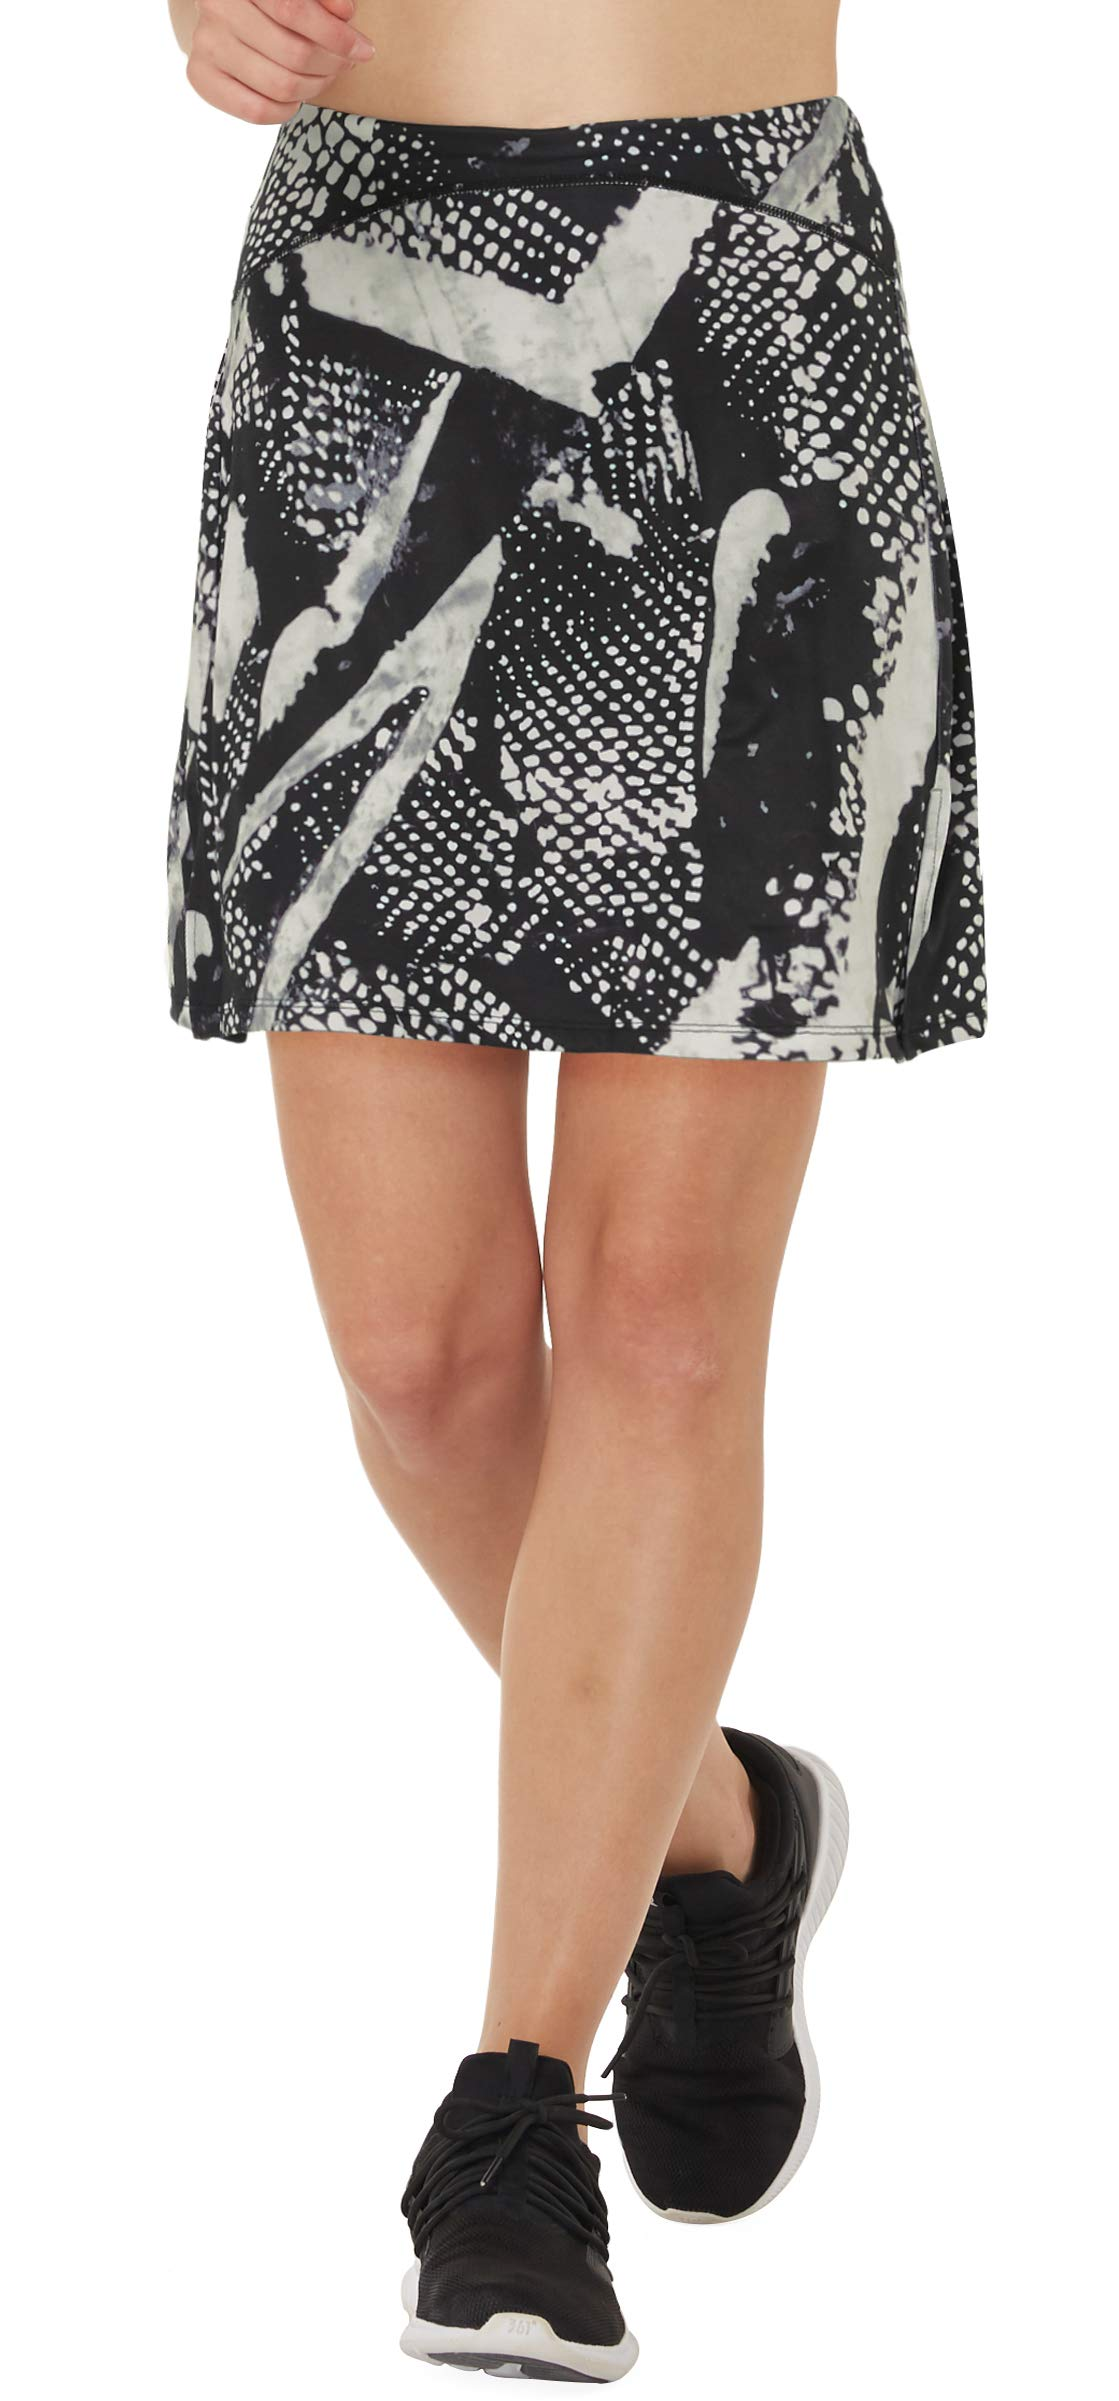 Women Print Golf Skirt Travel Skirts with Pockets Swim Skirt High Waist with Shorts Ink L by slimour